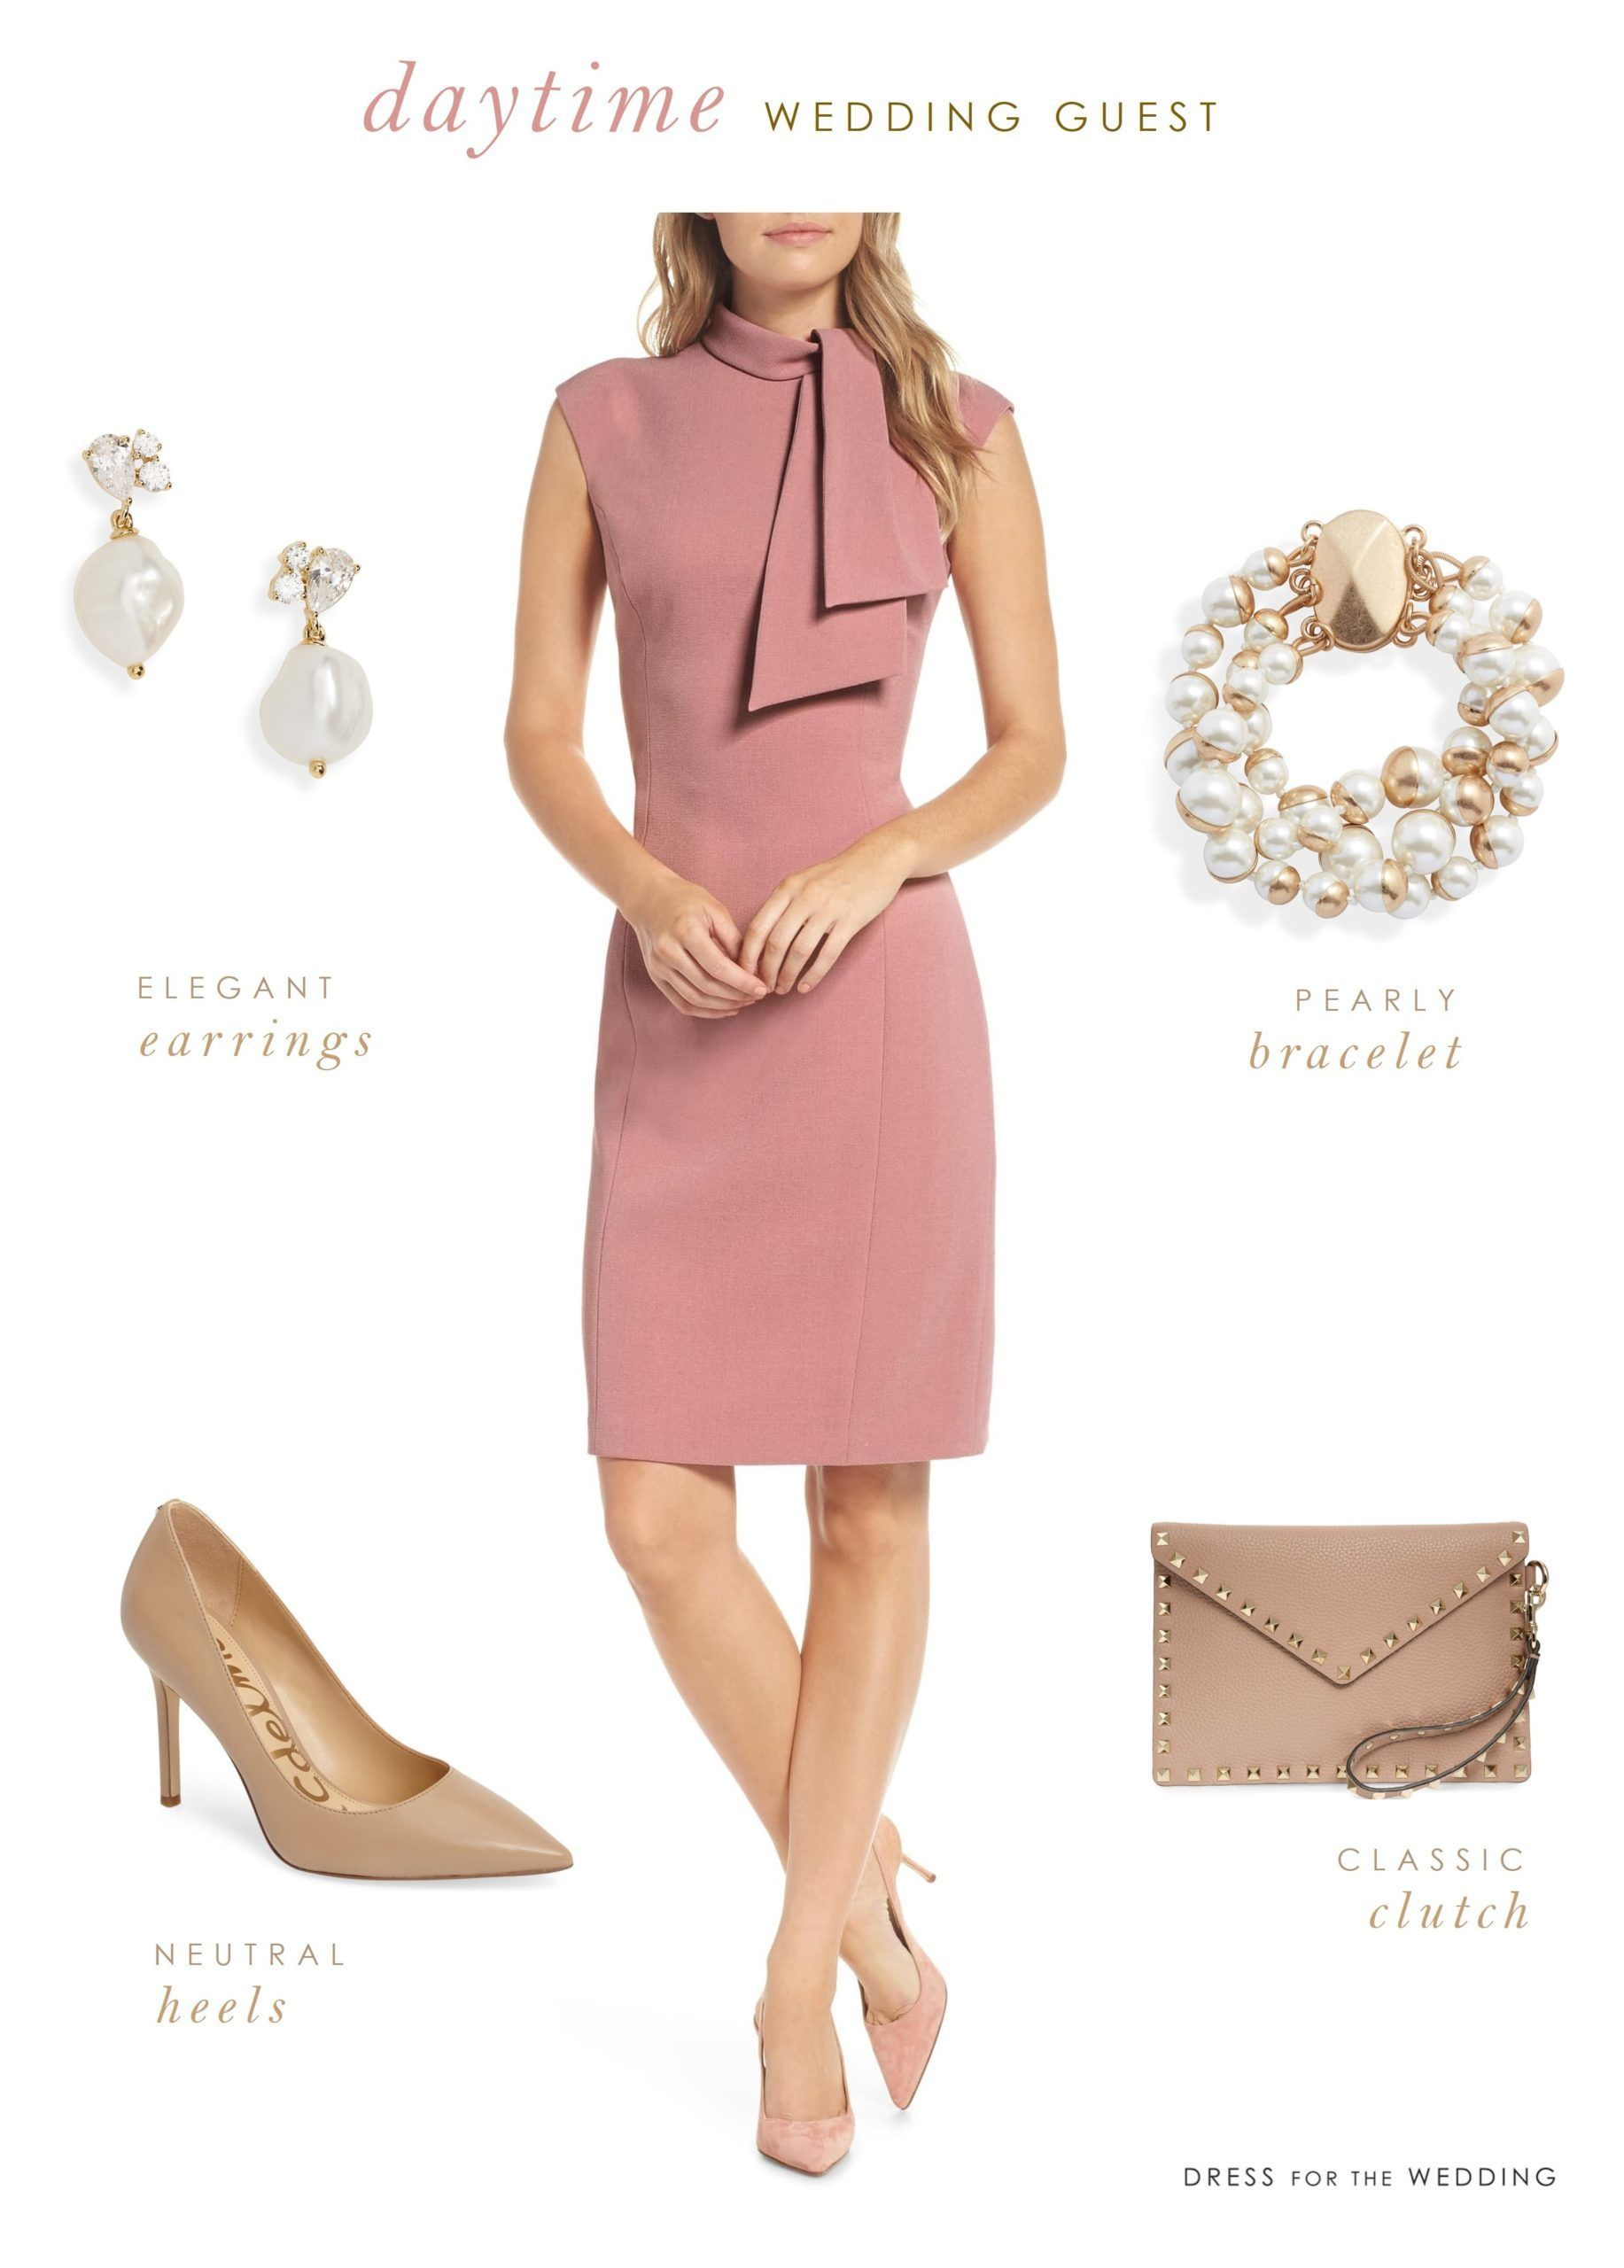 Pink Wedding Guest Outfit For Daytime Wedding Dress For The Wedding Pink Wedding Guest Outfits Casual Wedding Guest Dresses Pink Wedding Guest Dresses [ 2560 x 1833 Pixel ]